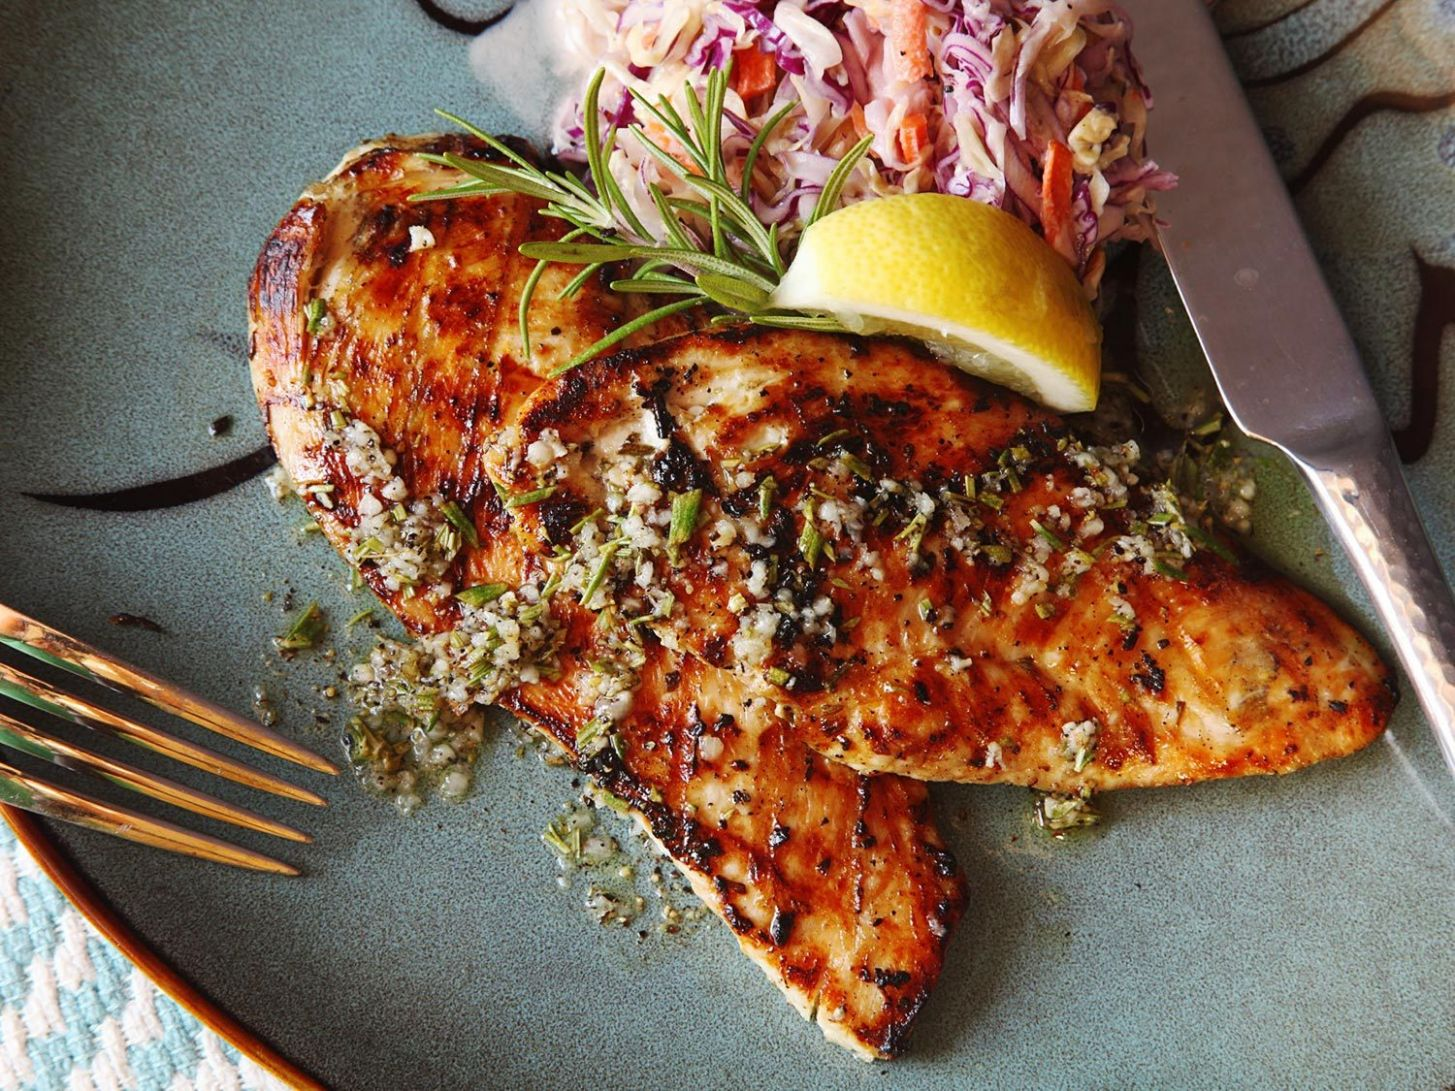 Five-Minute Grilled Chicken Cutlets With Rosemary, Garlic, and Lemon Recipe - Recipes Chicken Breast Cutlets